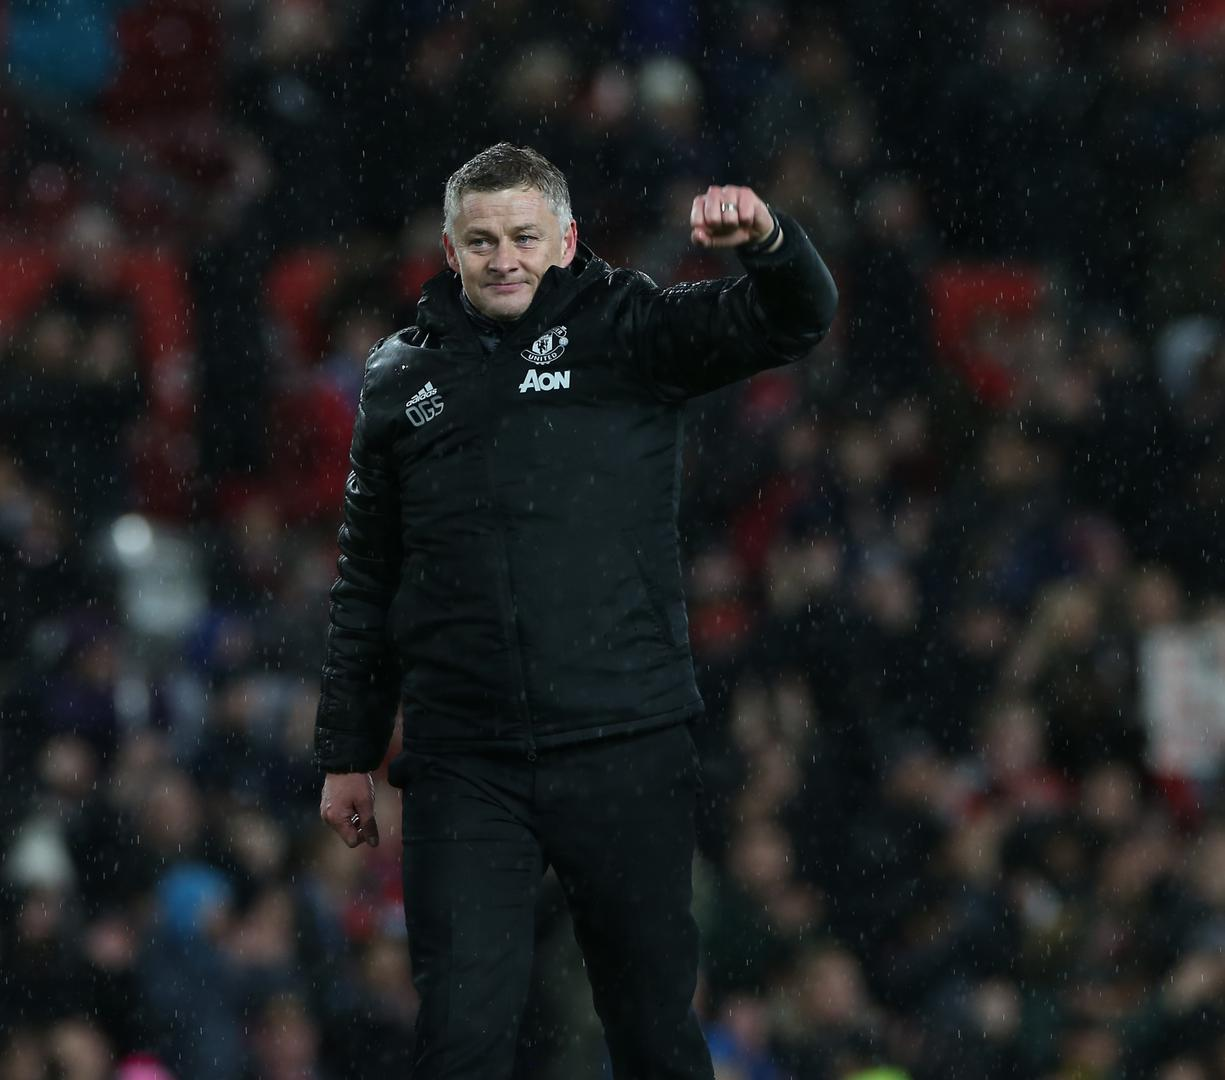 Ole Gunnar Solskjaer celebrates with the fans.